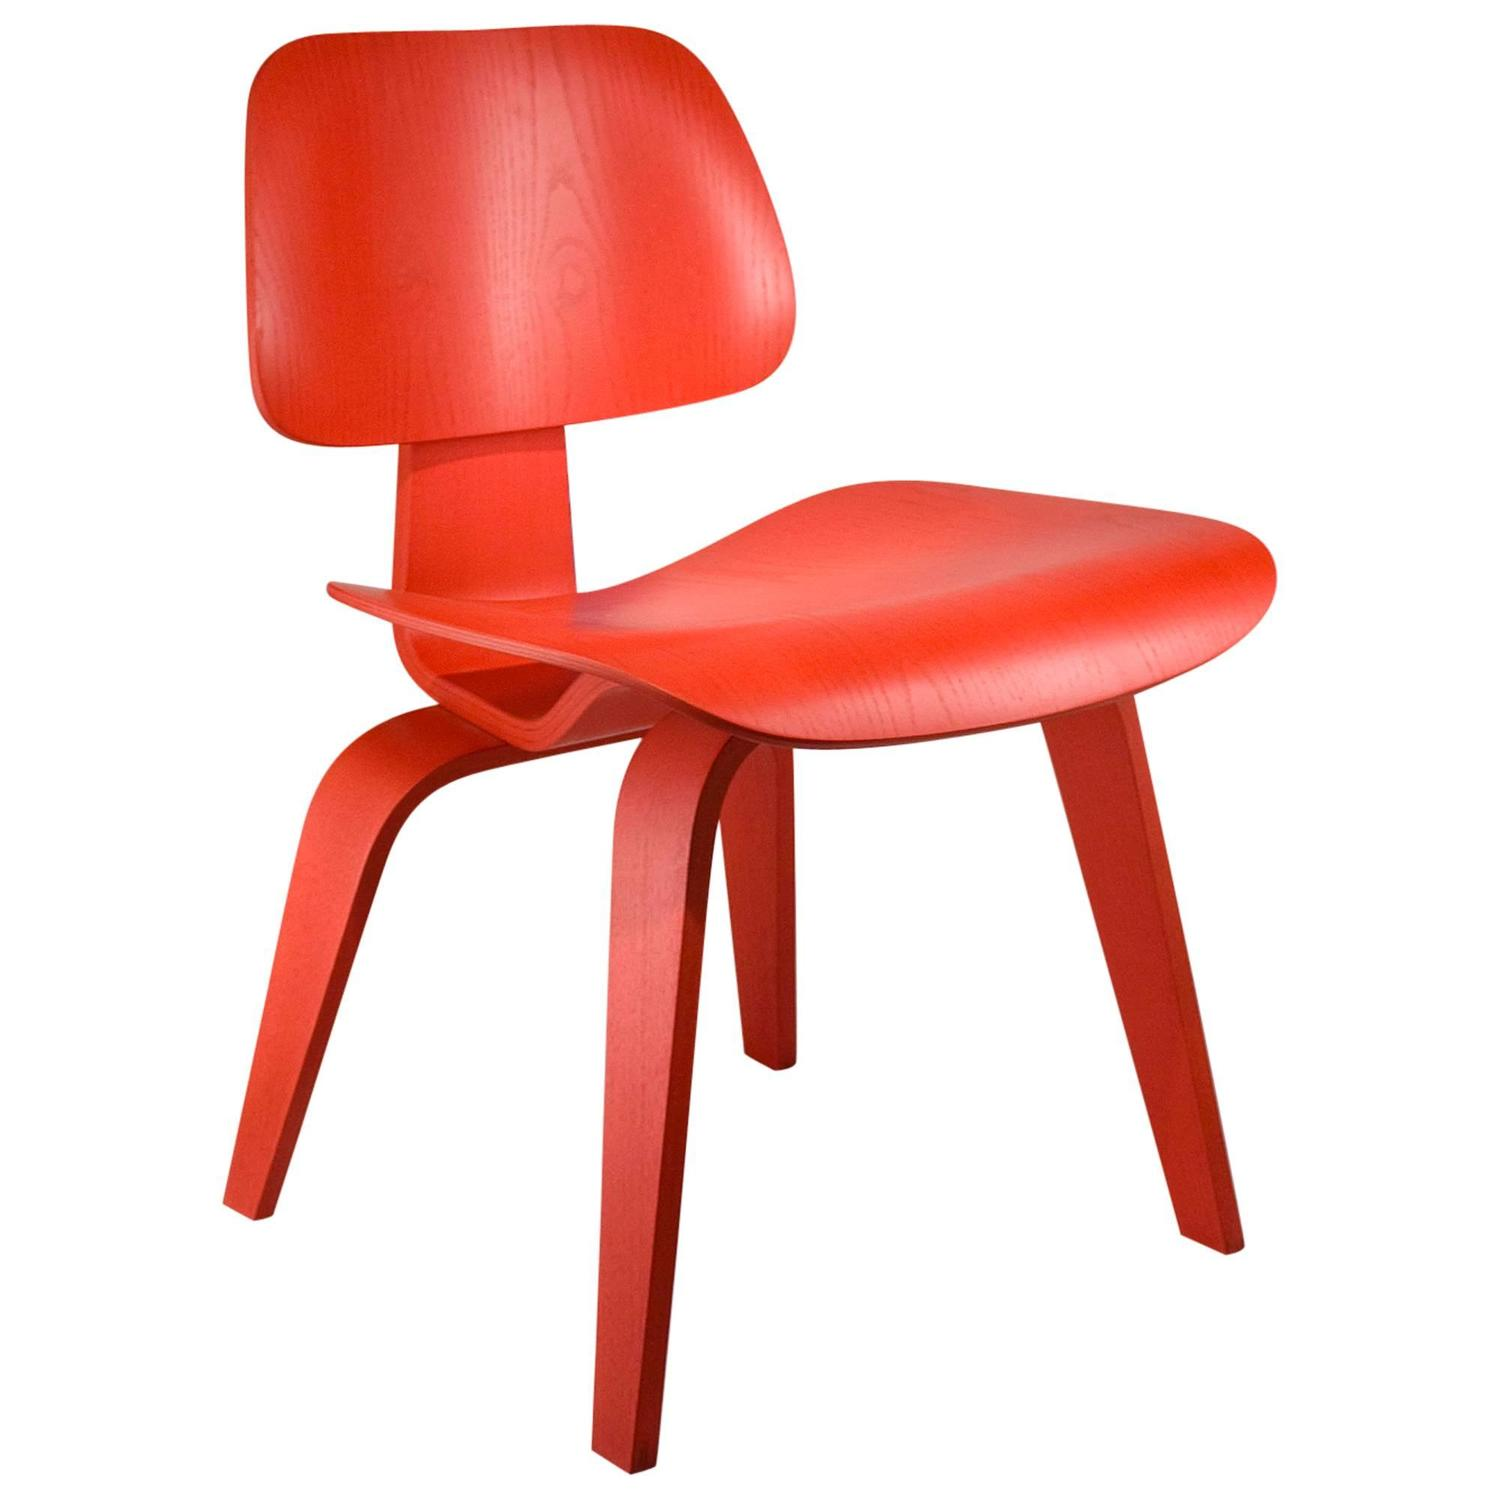 ray and charles eames furniture. Ply-Chair With Closed Back By Jasper Morrison For Vitra Sale At 1stdibs Ray And Charles Eames Furniture